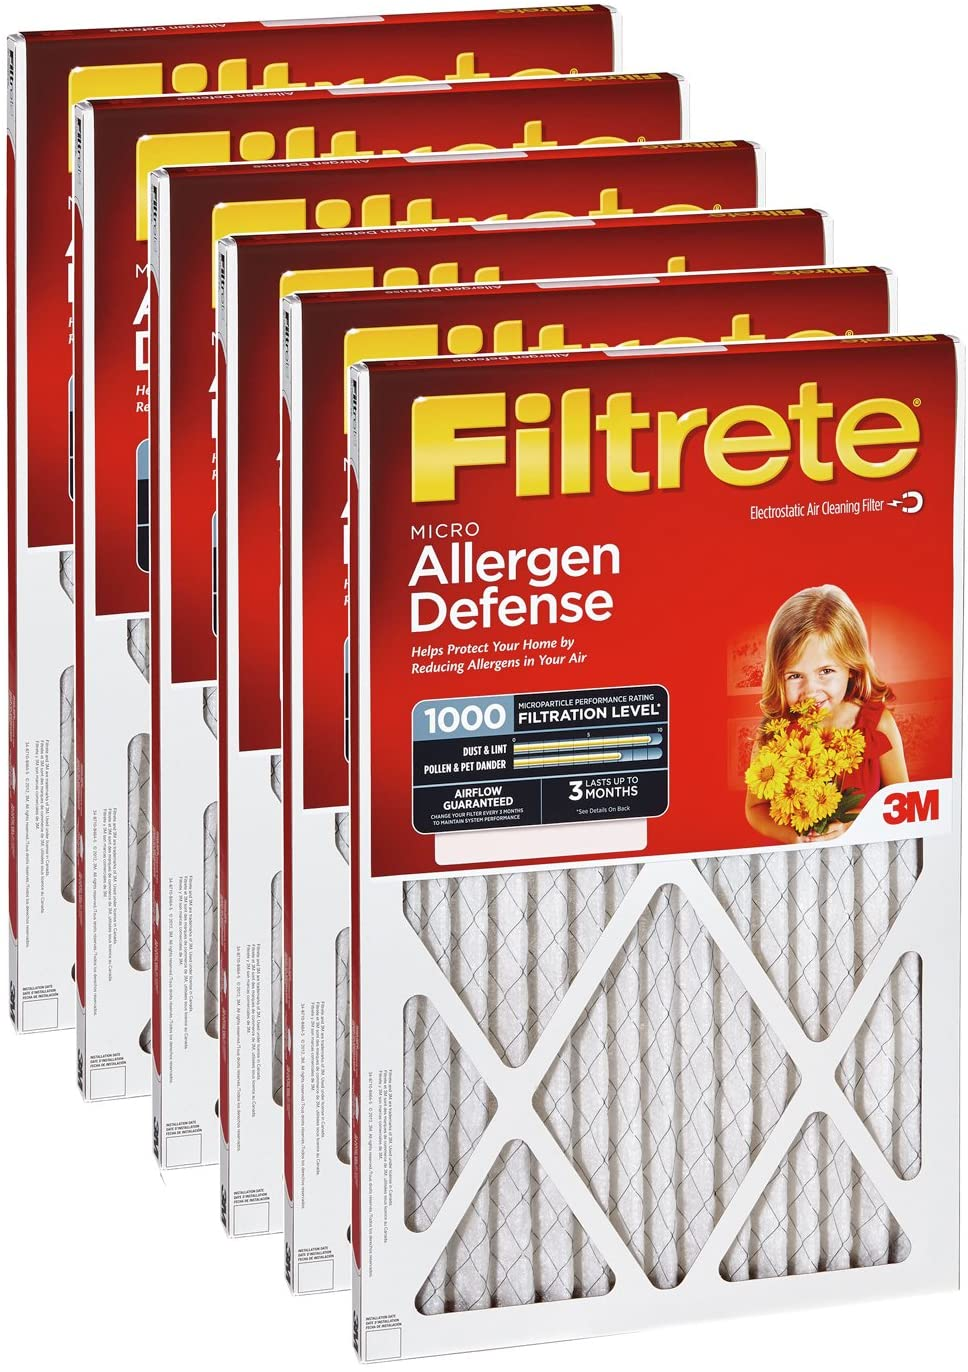 by 3m by Filtrete Pack of 6 14x20x1 MERV 3 Filtrete Air Filter